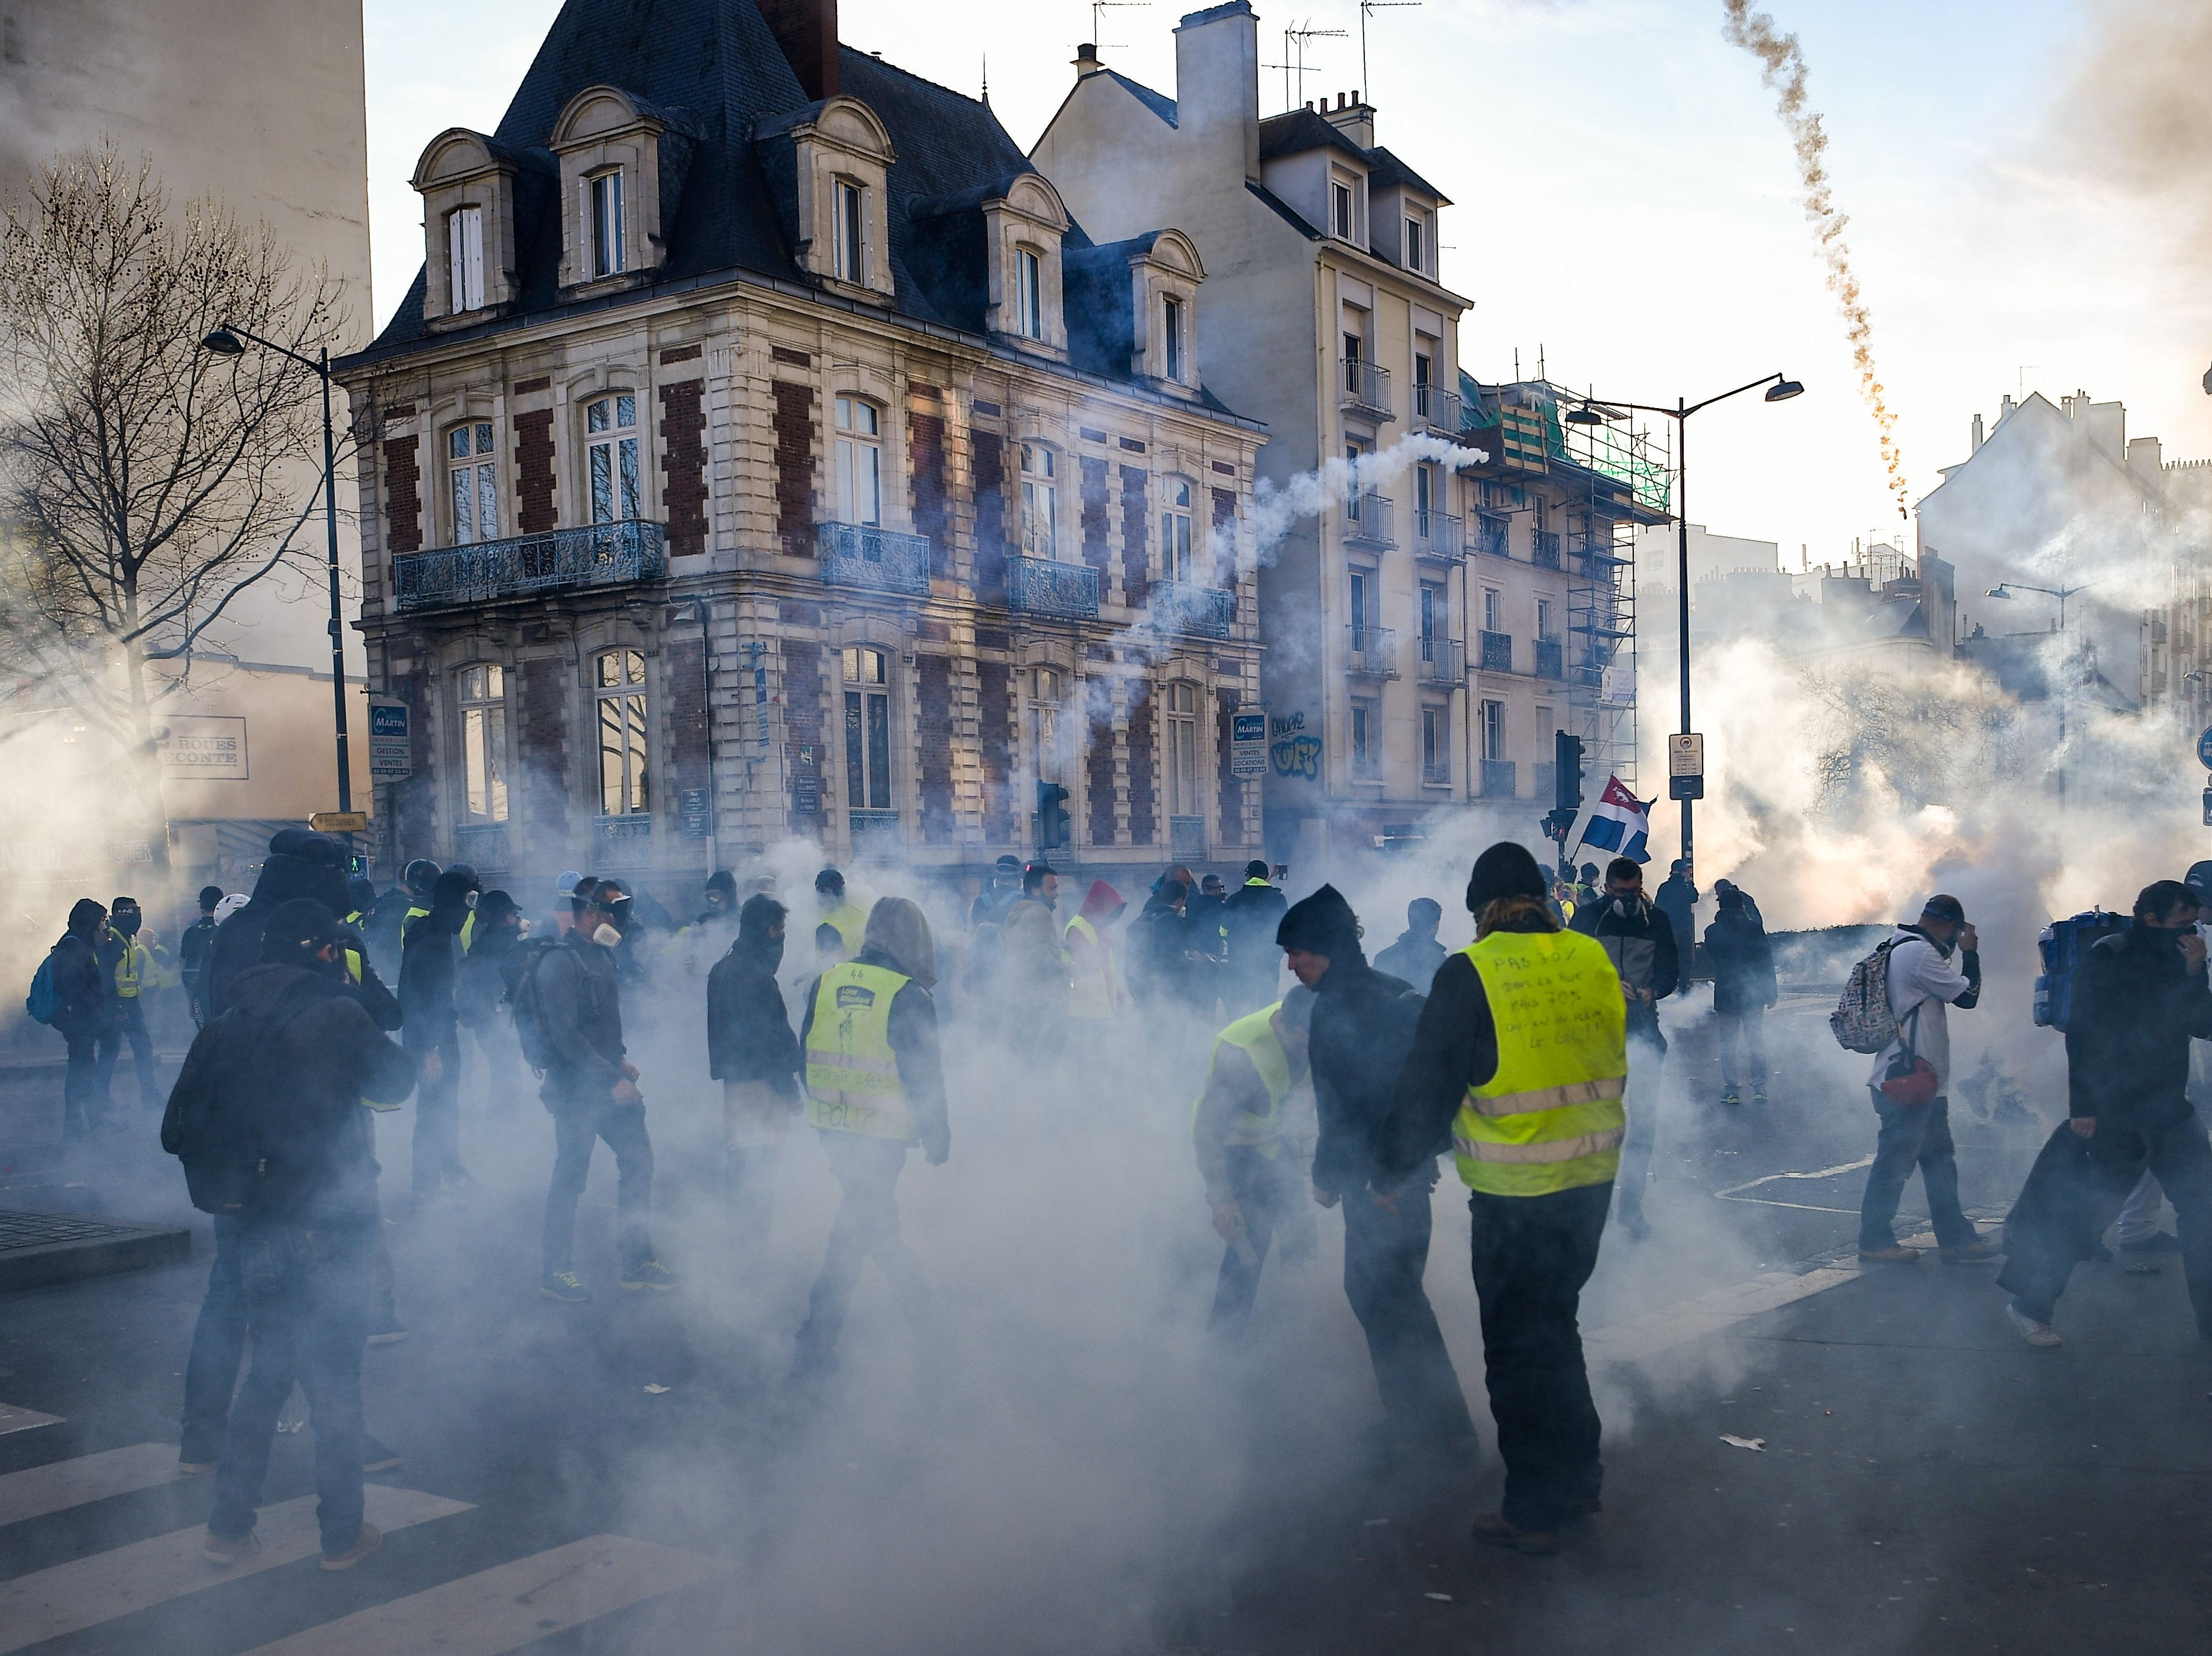 Police use tear gas as members of the yellow vest (gilet jaune) takes part in the 15th consecutive Saturday of demonstrations in Rennes, western France on Feb. 23, 2019.